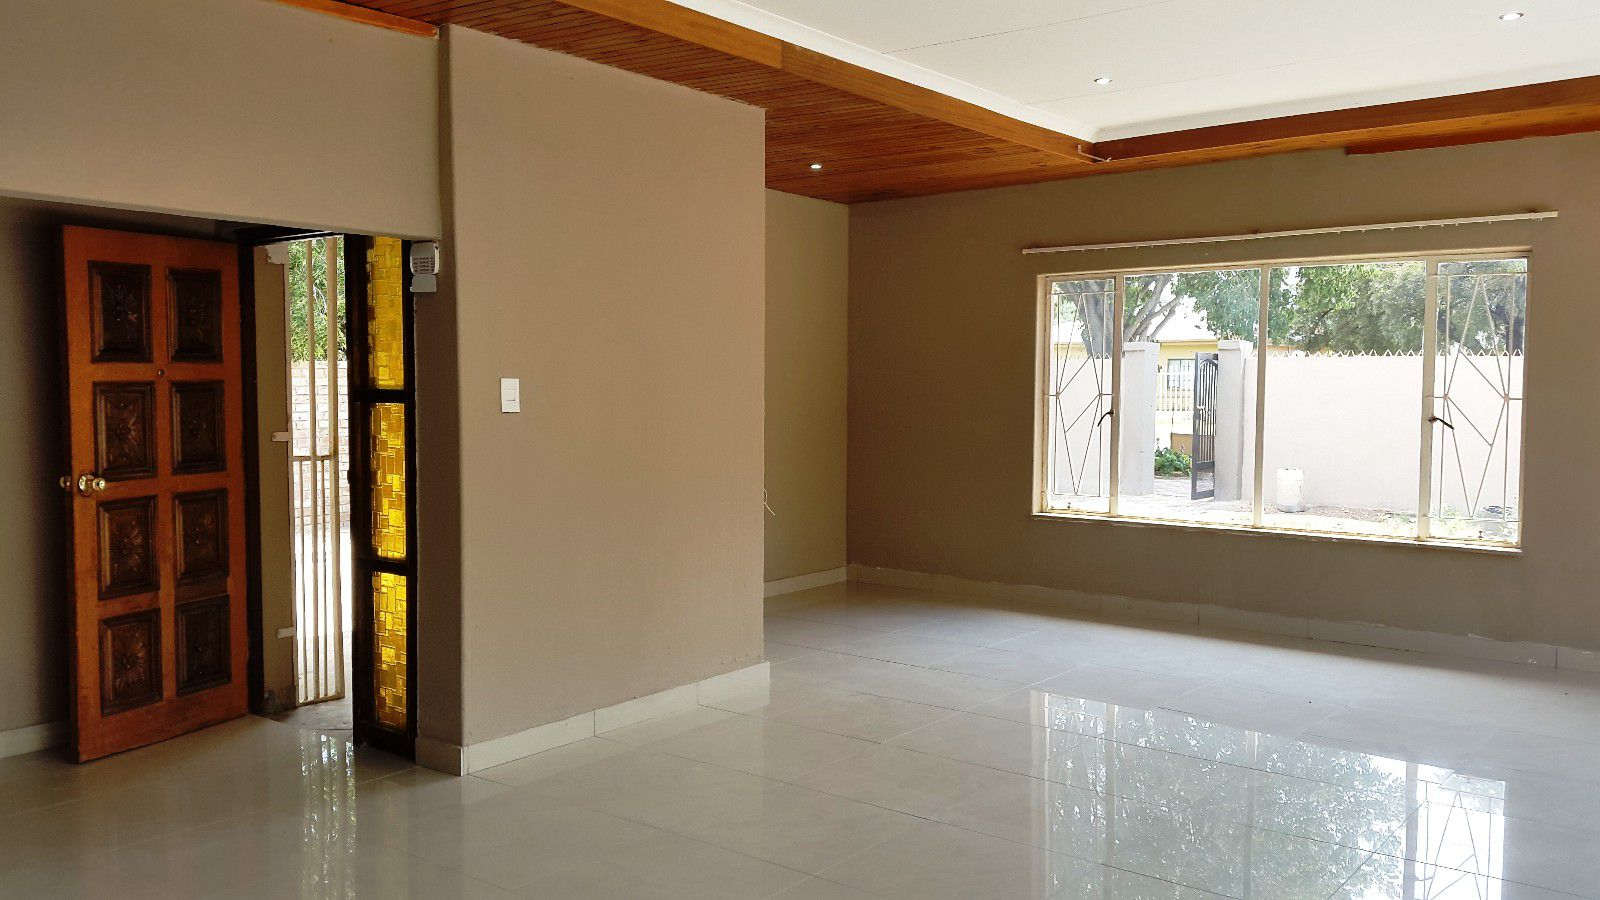 Potchefstroom Central property for sale. Ref No: 13410360. Picture no 5